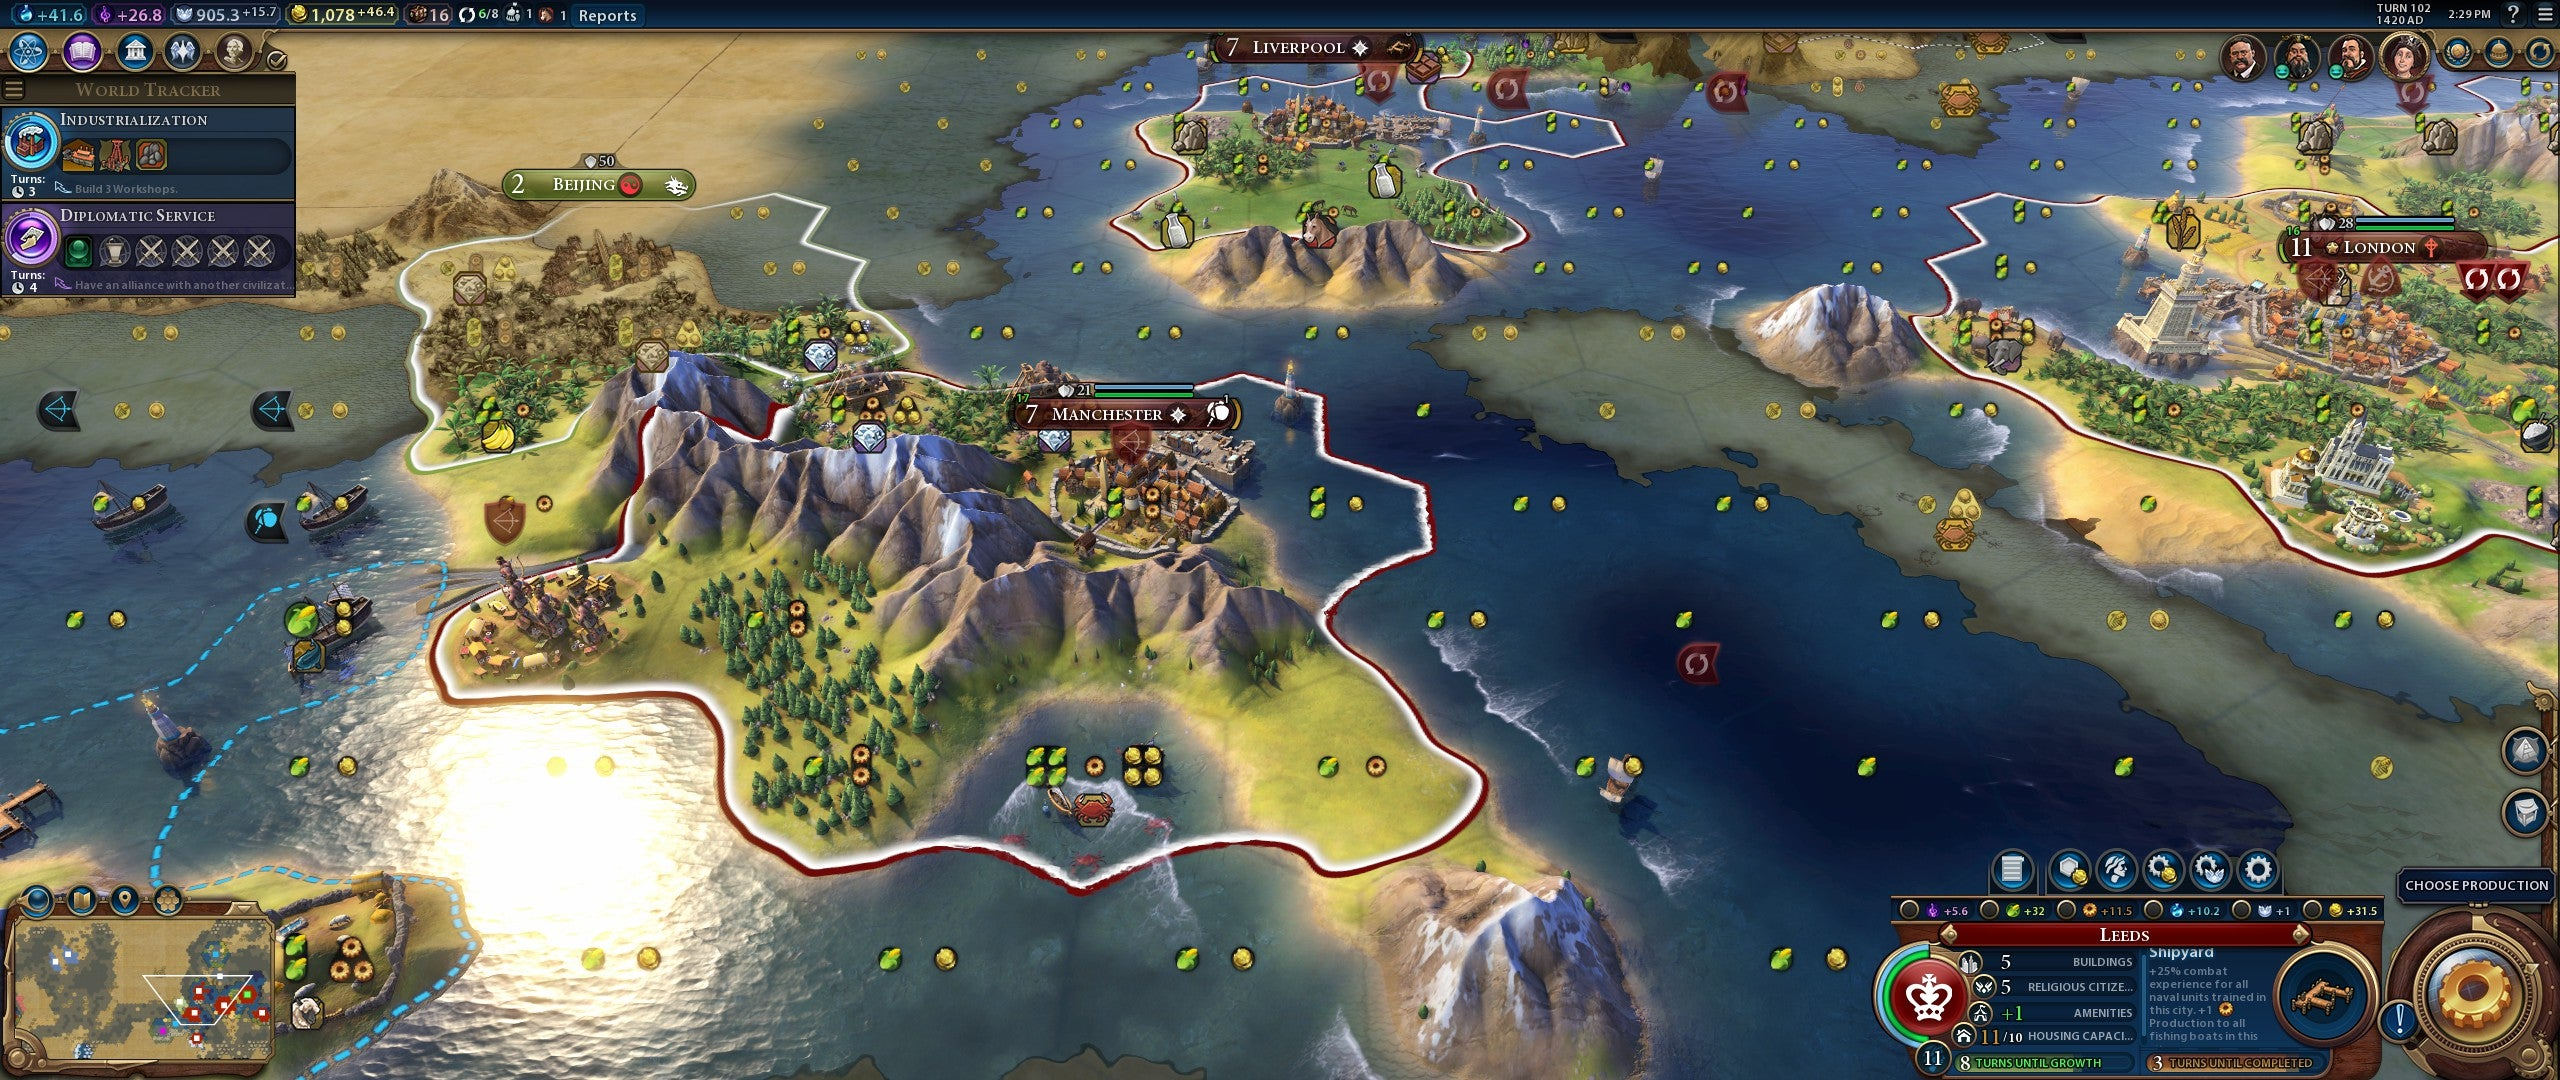 Civ 6 Mods - Early 2018 Review - Odin Gaming